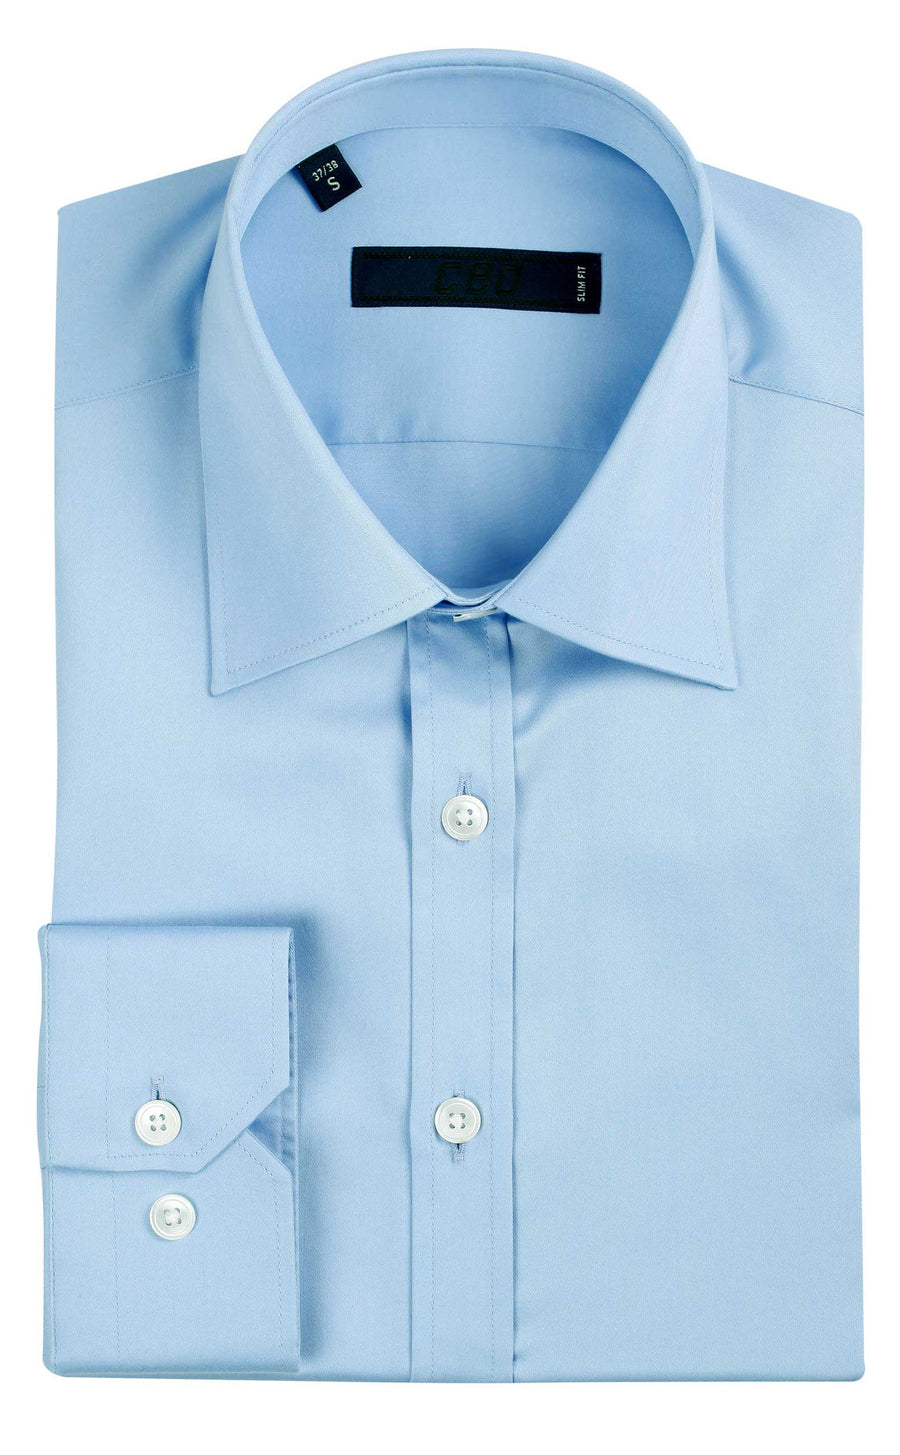 CEO Slim Fit Shirt in Blue - Ron Bennett Menswear